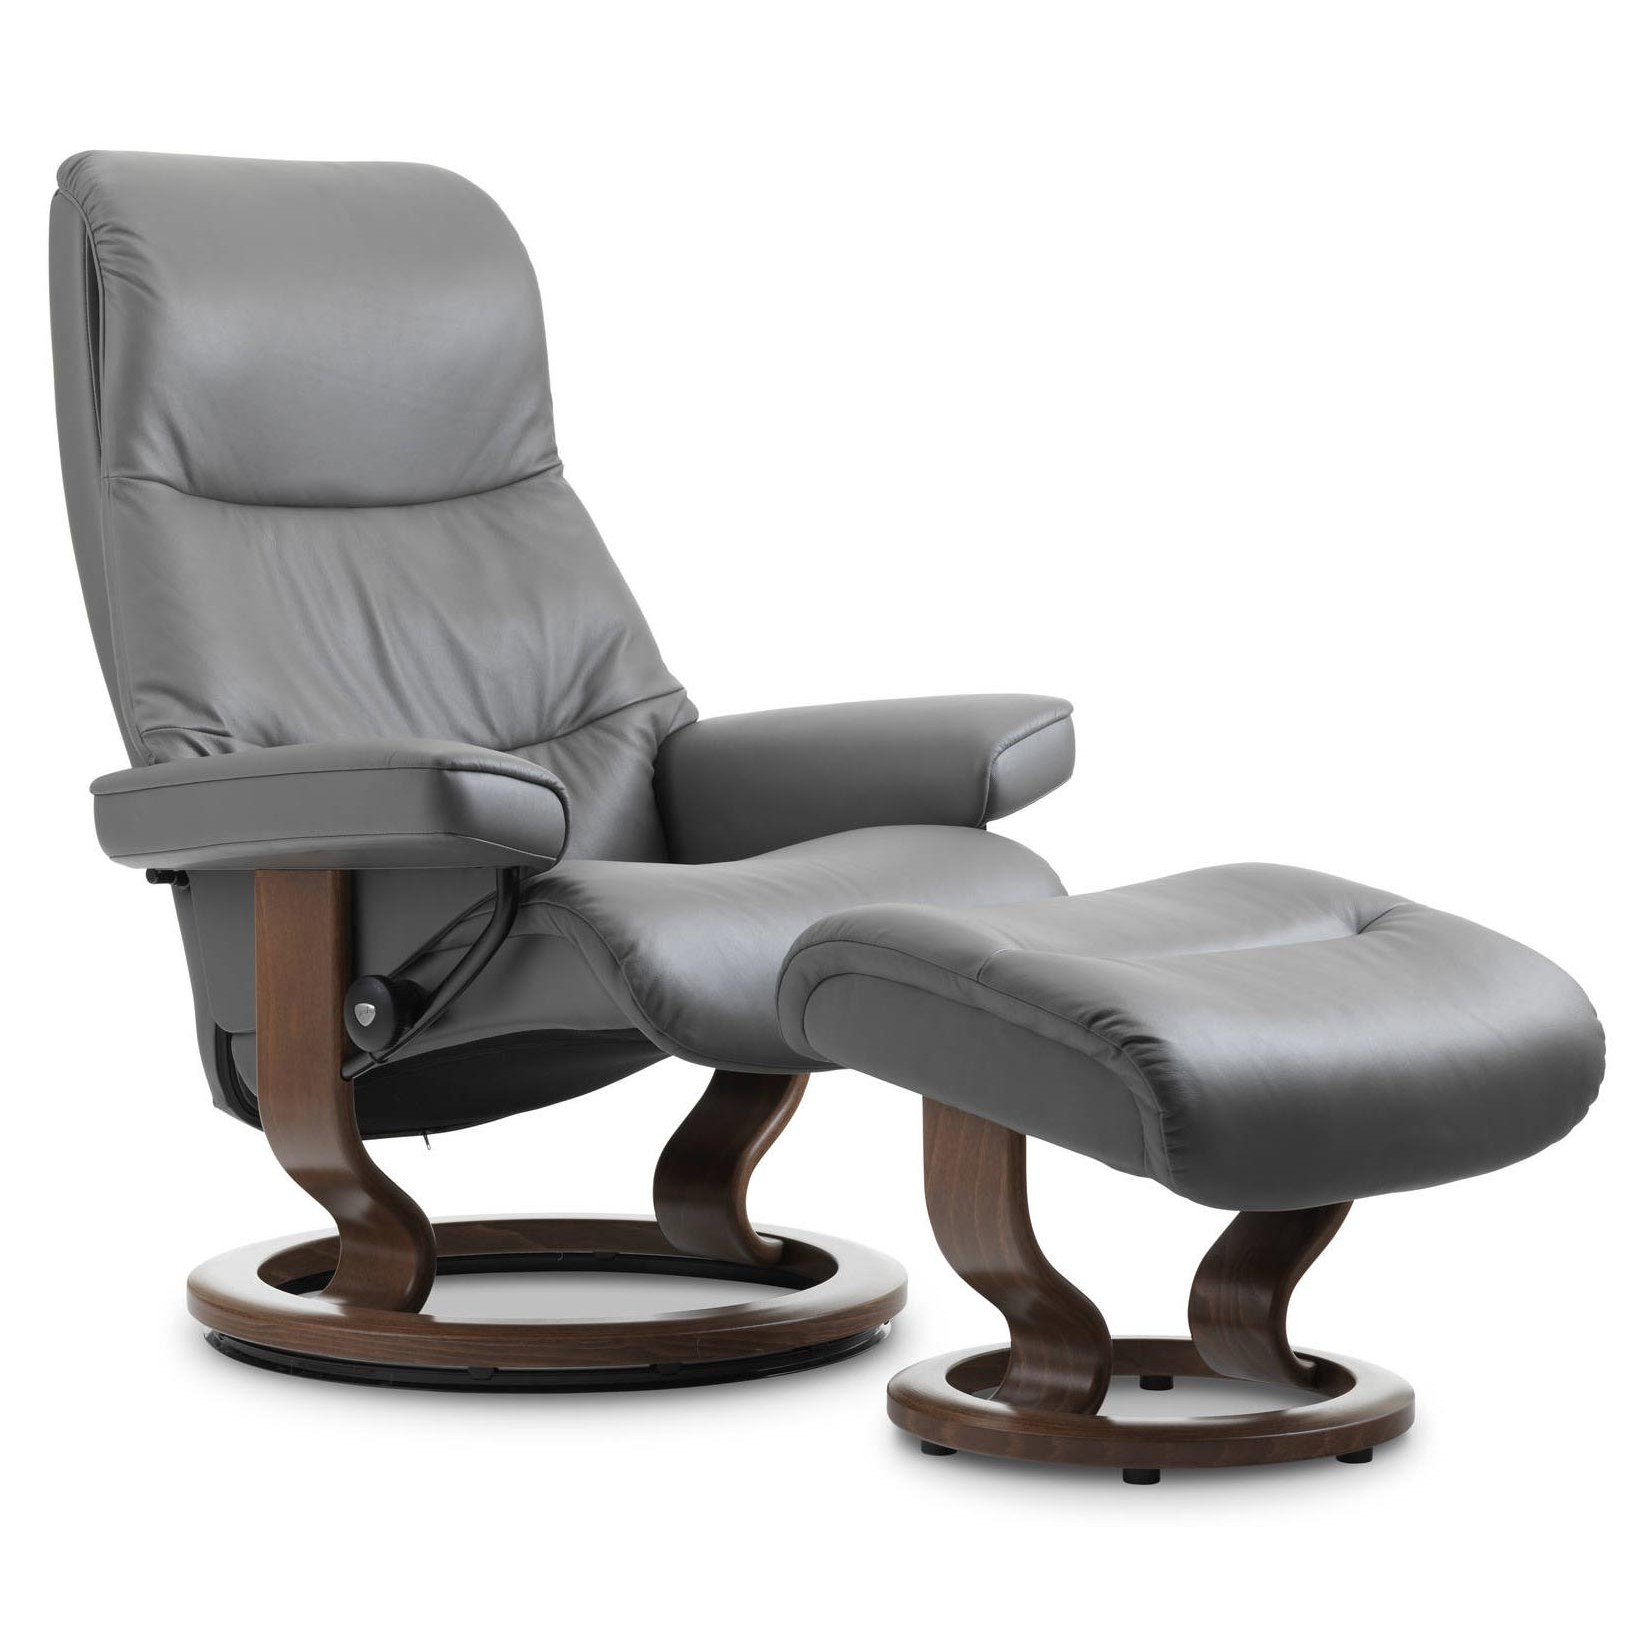 Stressless Wing Classic Legcomfort Stressless View Classic Recliner And Ottoman From 3 195 00